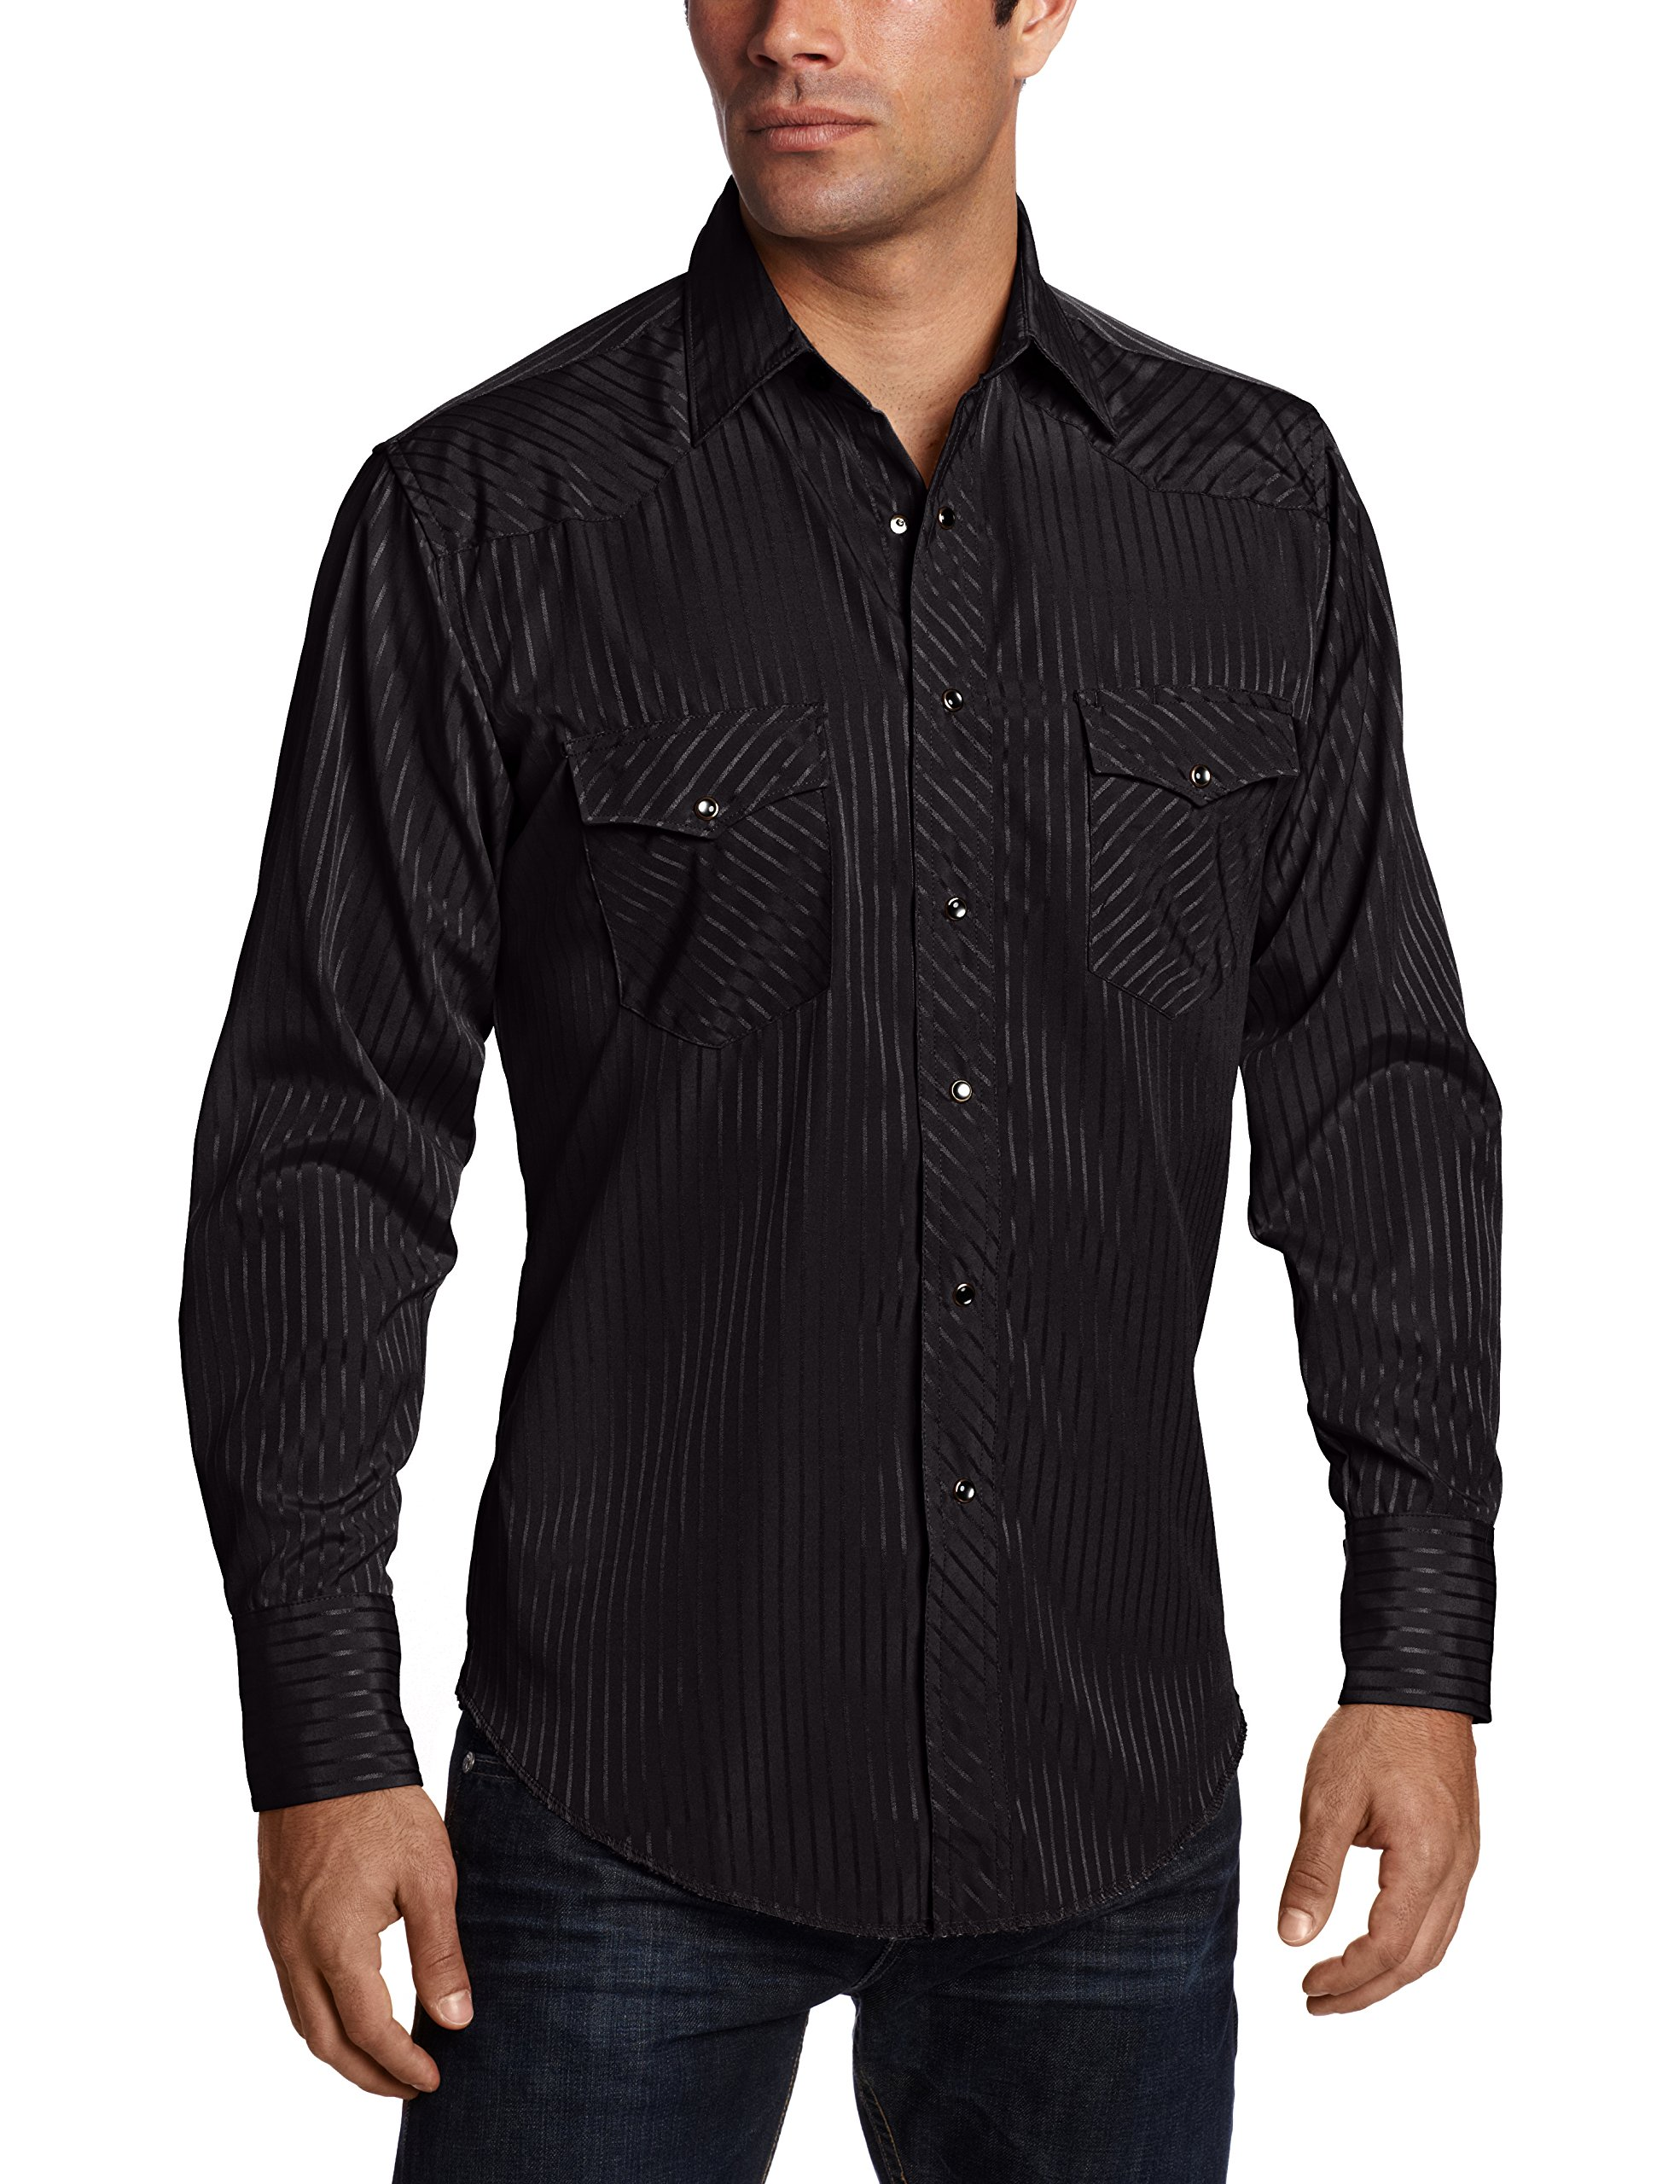 Wrangler Men's Sport Western Snap Shirt Dobby Stripe, Black, X-Large